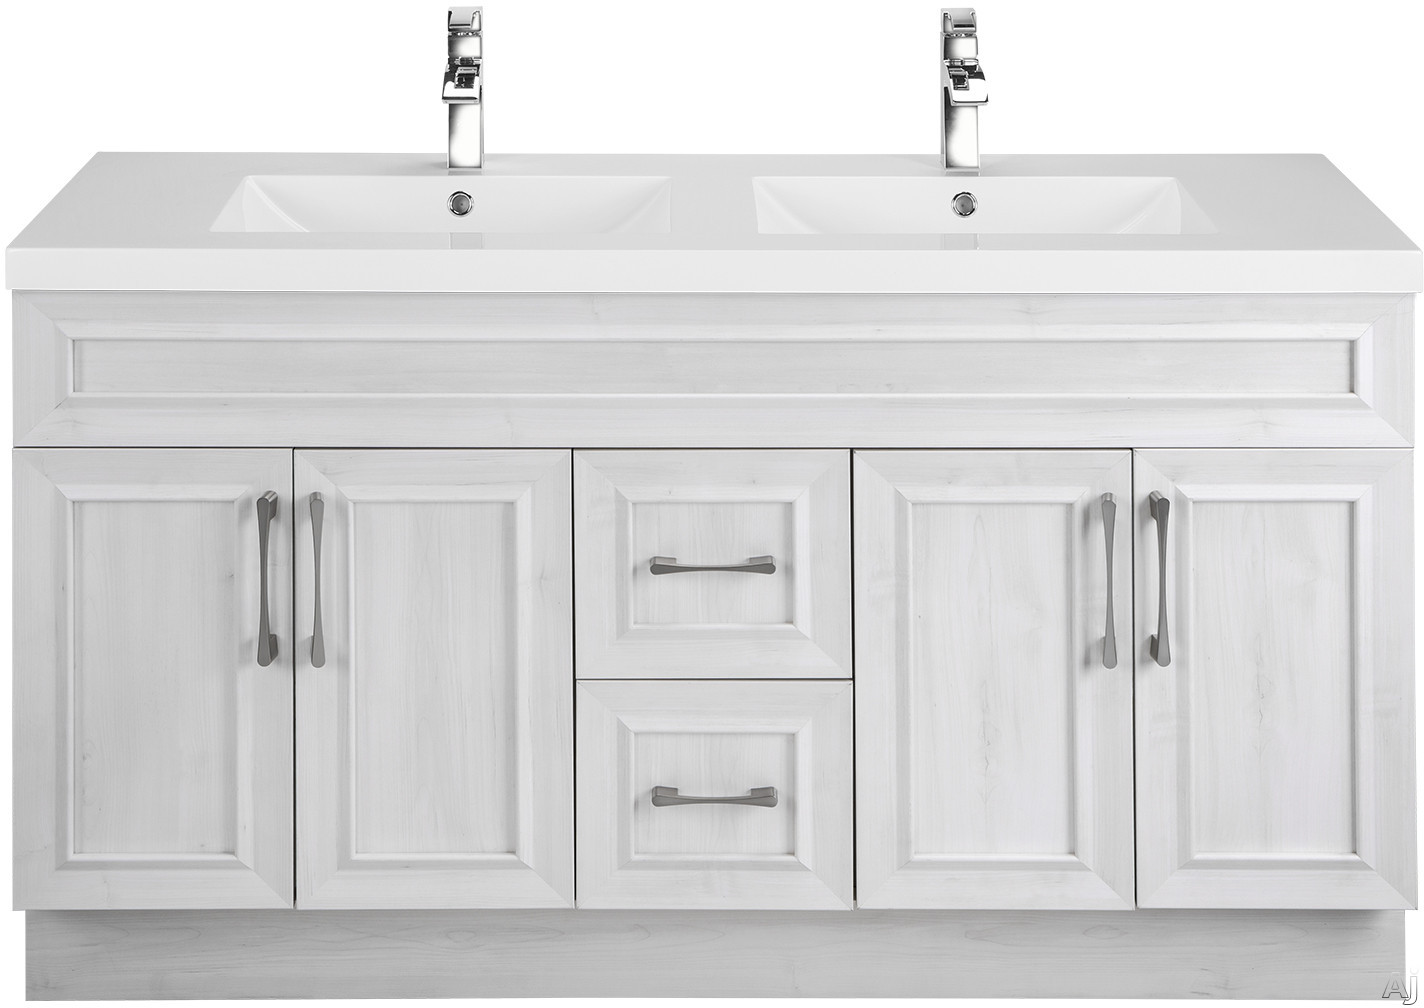 Cutler Kitchen & Bath Classic CCTRFH60DBT 60 Inch Freestanding Double Bowl Vanity with 2 Soft Close Drawers, Countertop and Sink and Handles Included